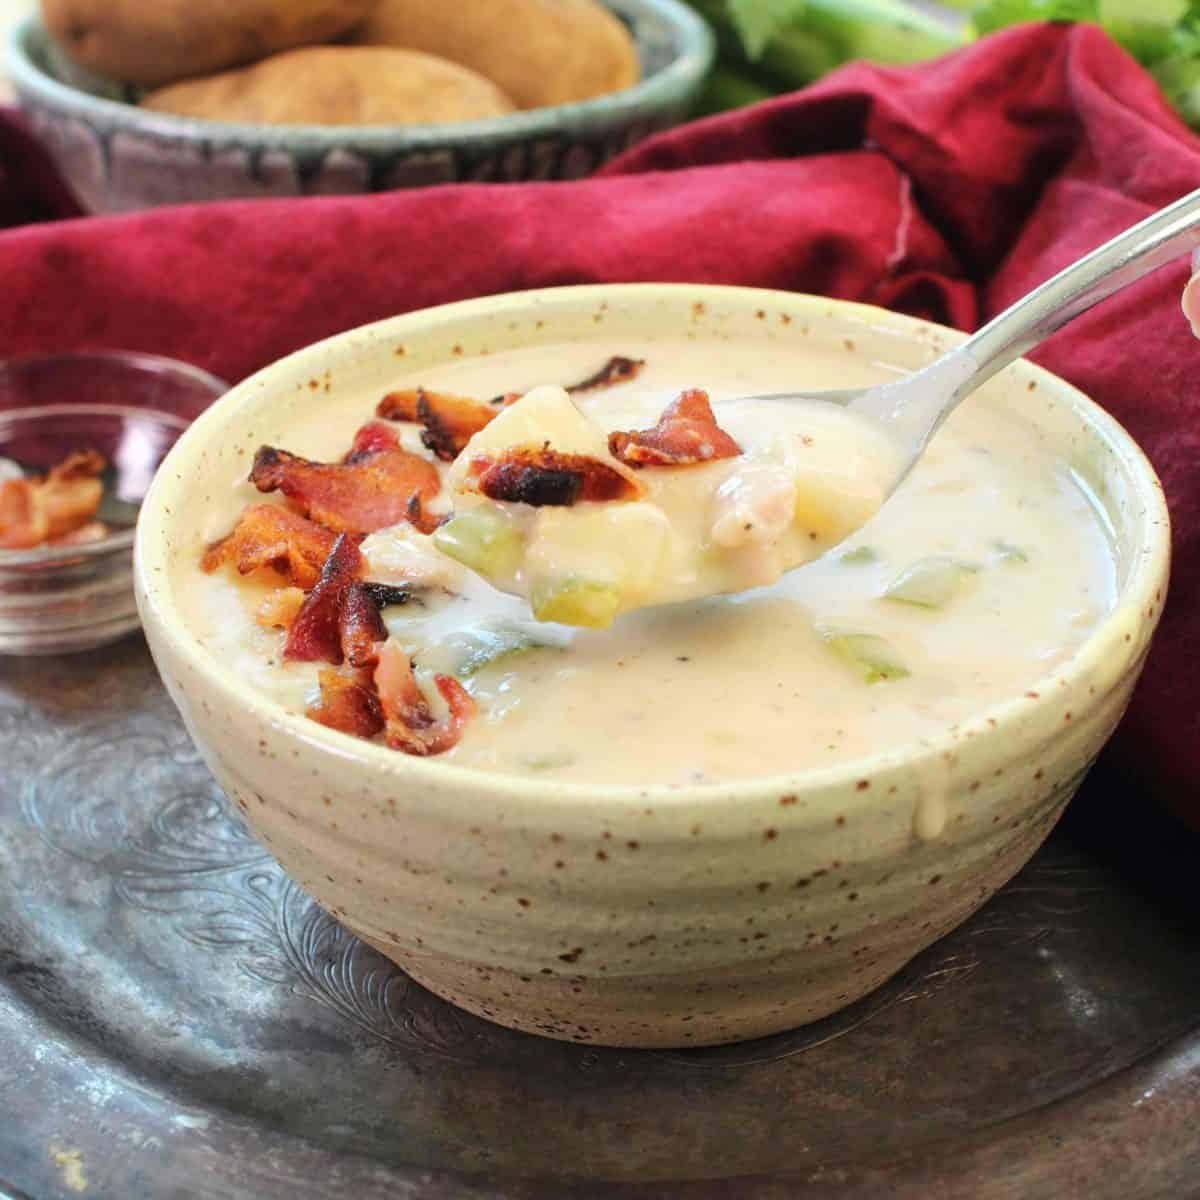 a spoonful of clam chowder filled with bacon and clams.